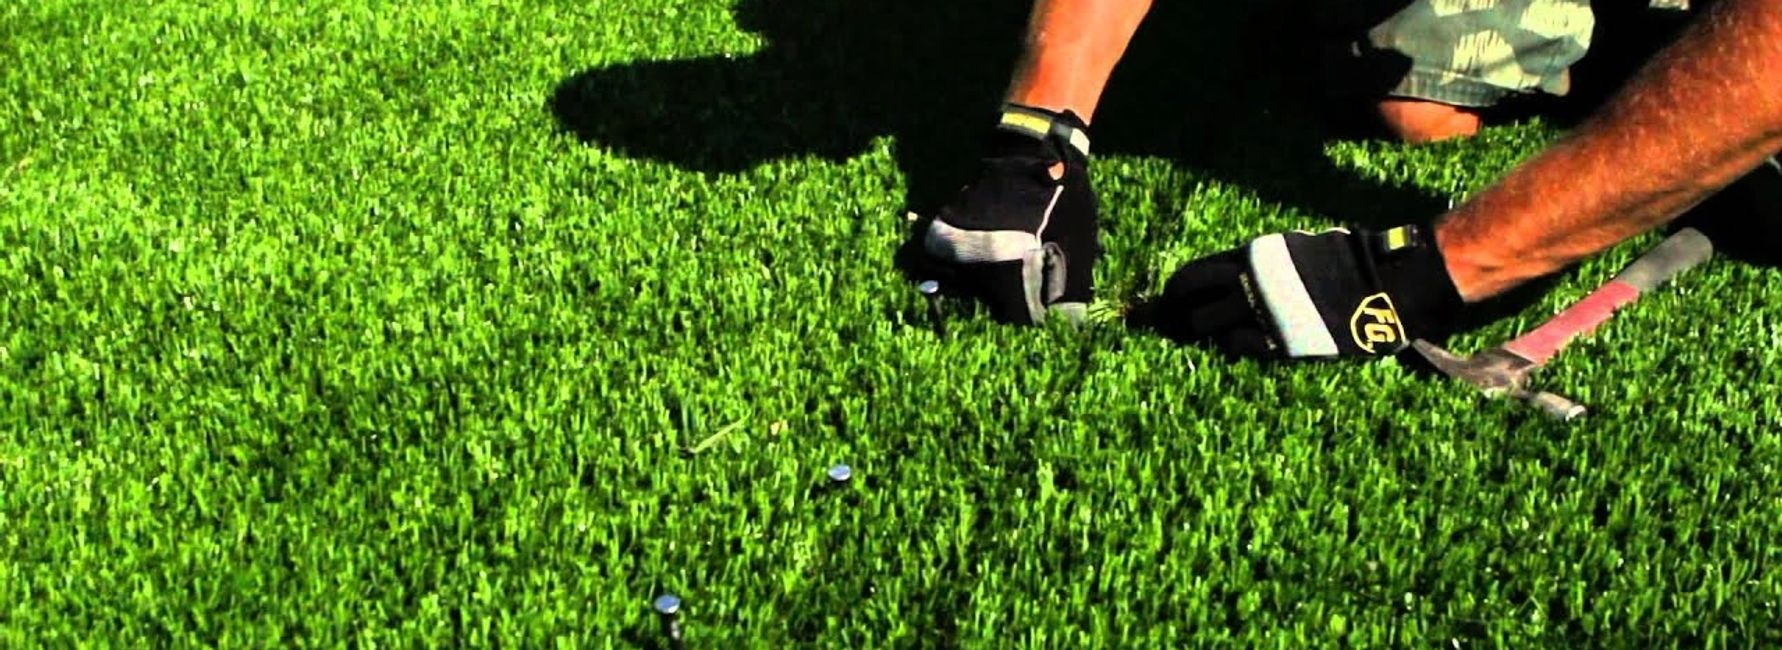 Artificial grass, synthetic turf, installation, putting green, golf, astro turf,